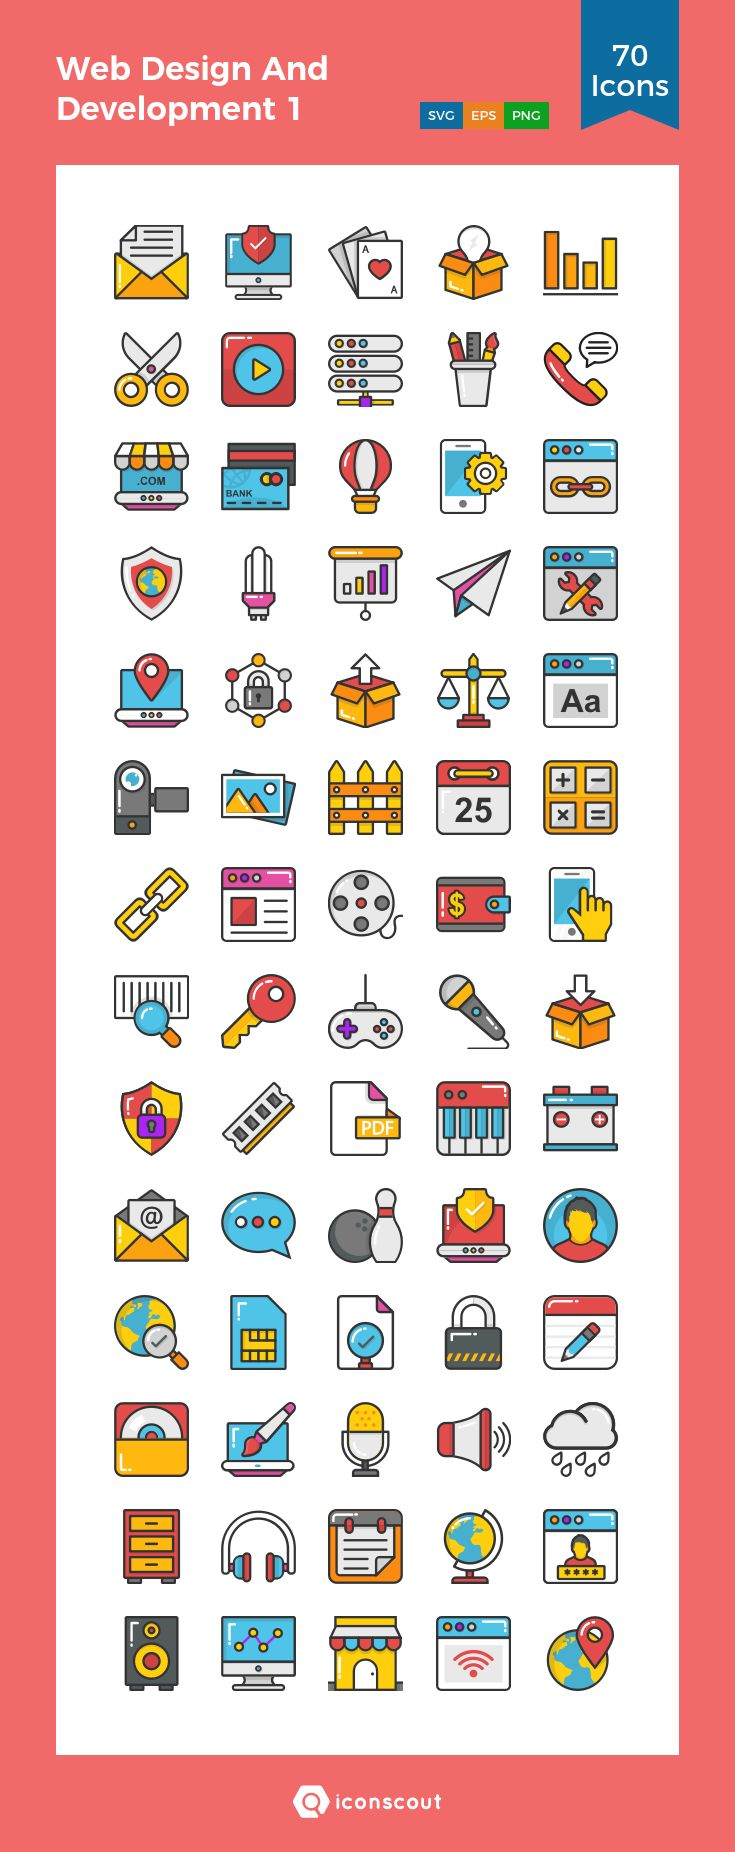 Web Design And Development 1  Icon Pack - 70 Filled Outline Icons